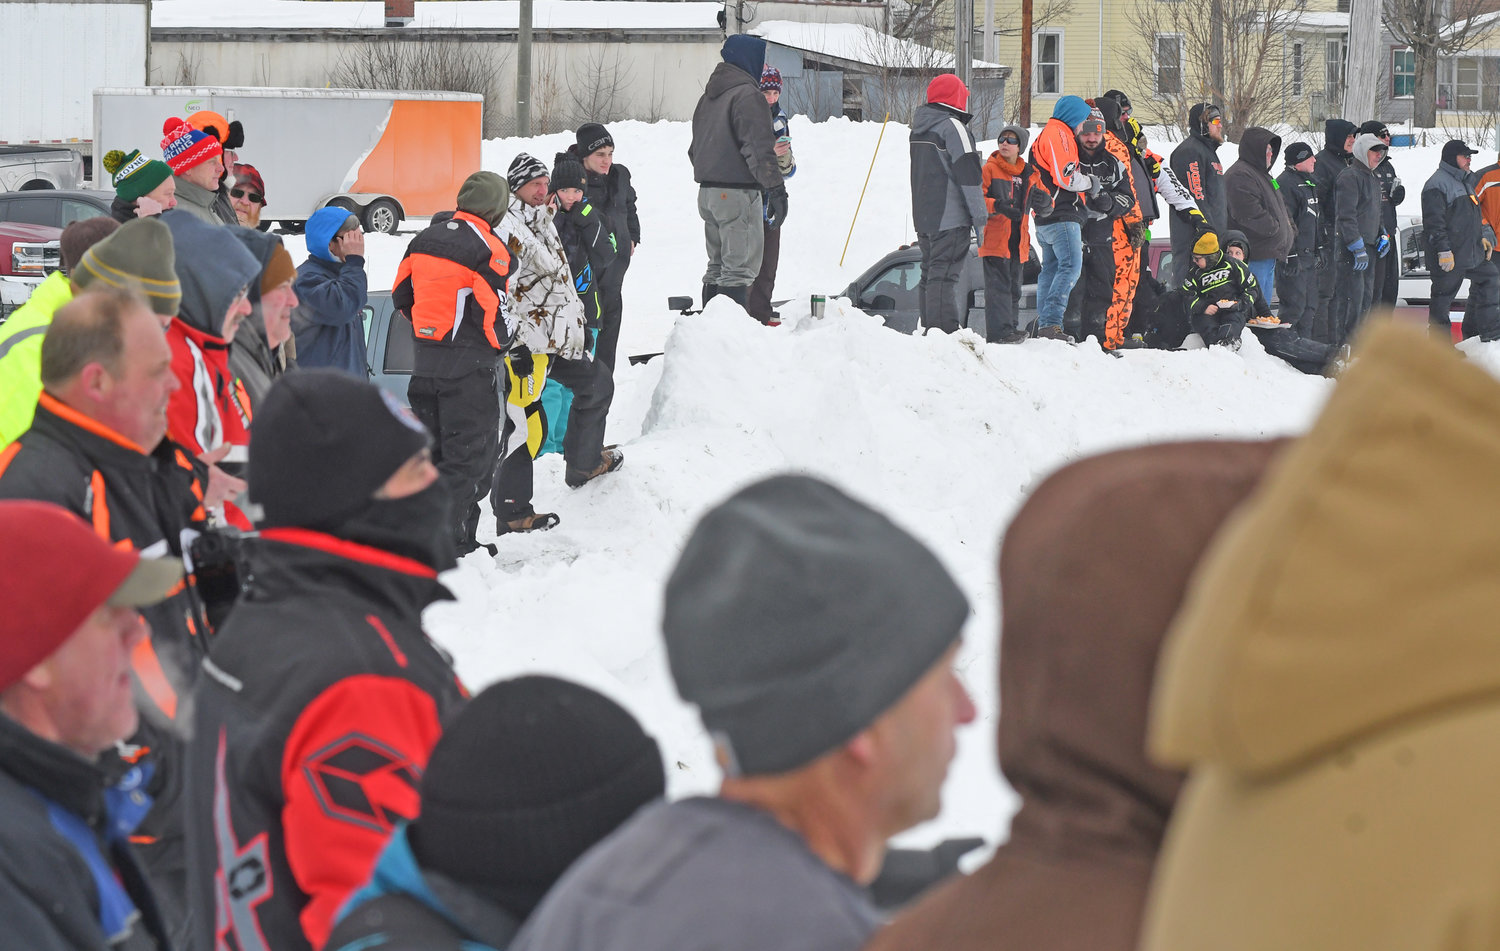 ALL REVVED UP — Race fans line the banks as they stand on the sidelines to watch the racing on Feb. 2 at the Boonville Snow Fest on Saturday. After several days of frigid weather, spectators were greeted by more seasonable temperatures both last Saturday and Sunday.